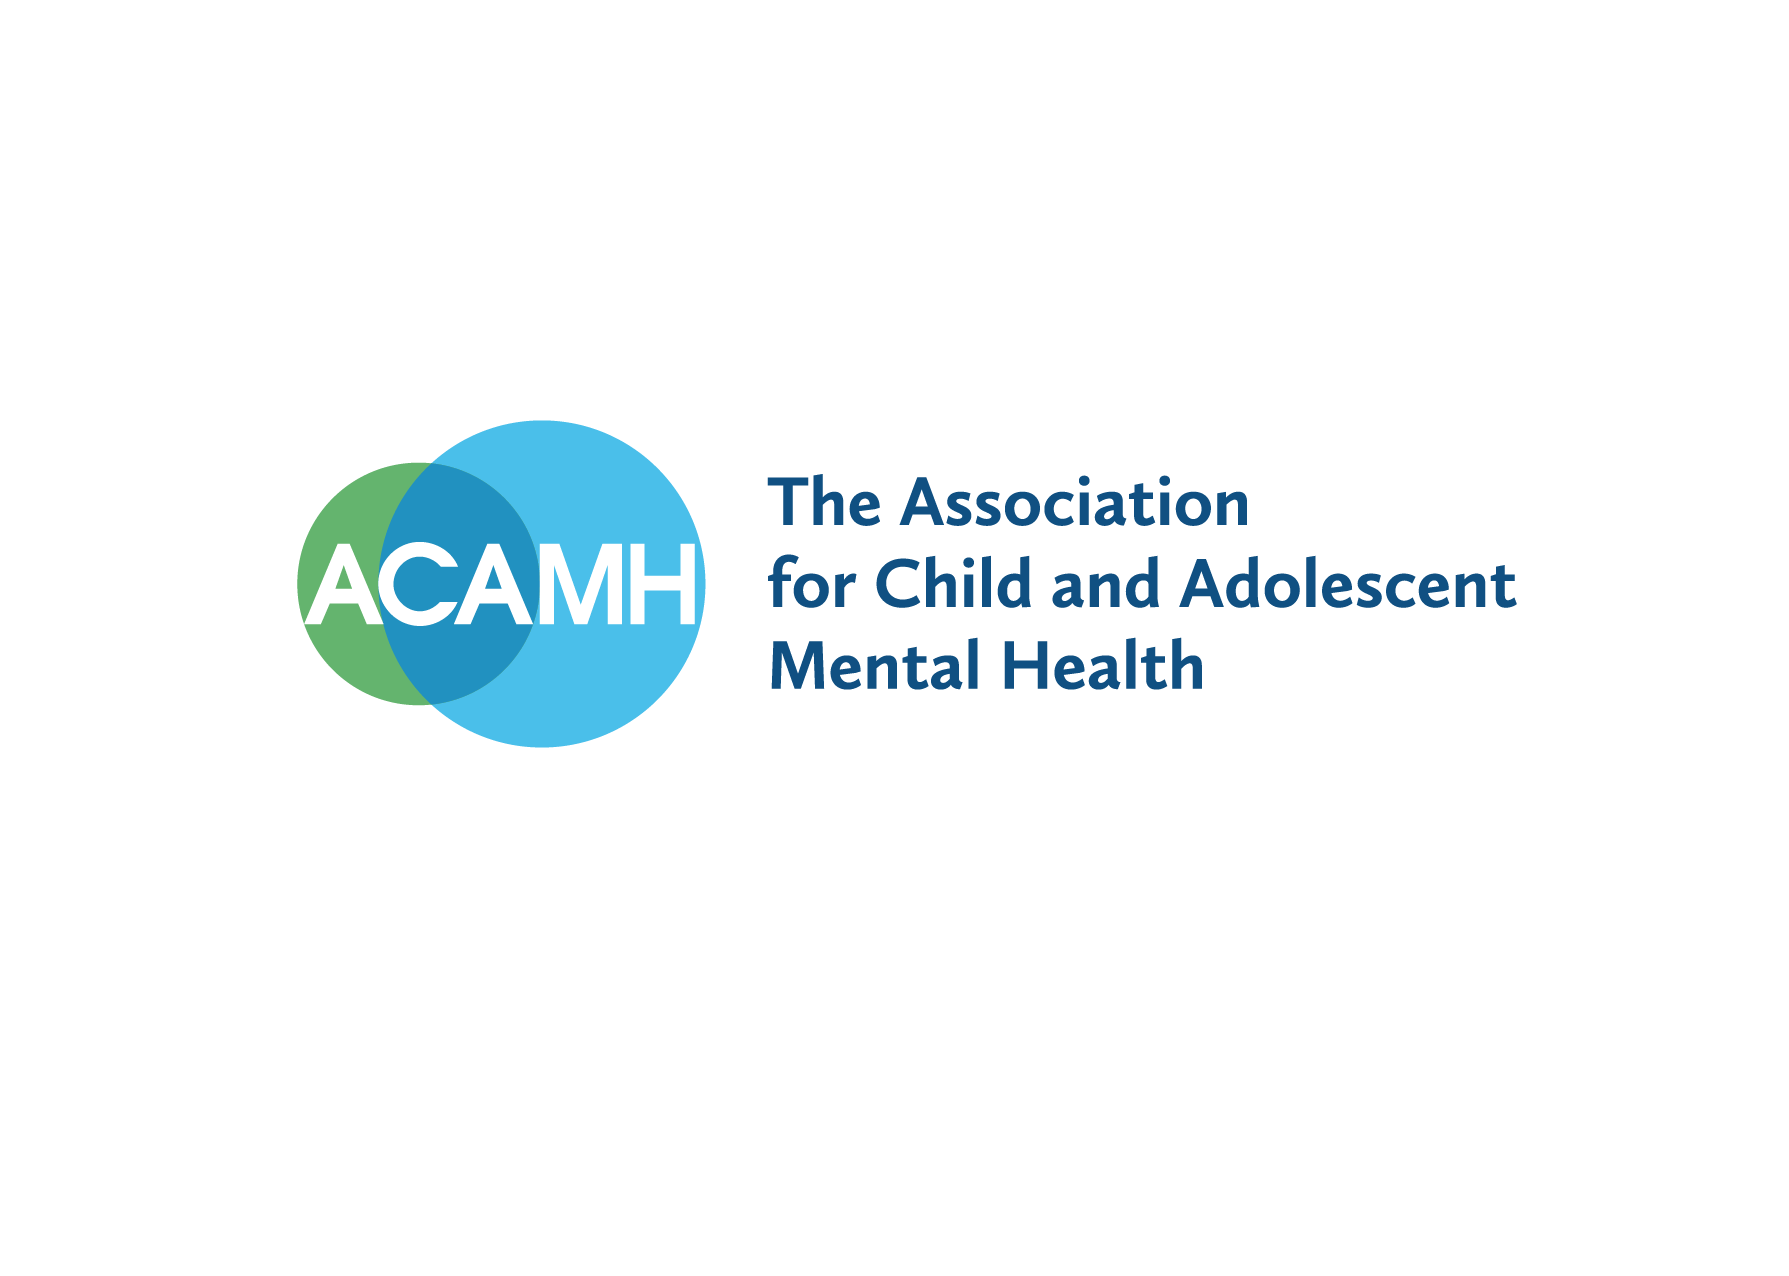 The Association for Child and Adolescent Mental Health (ACAMH)